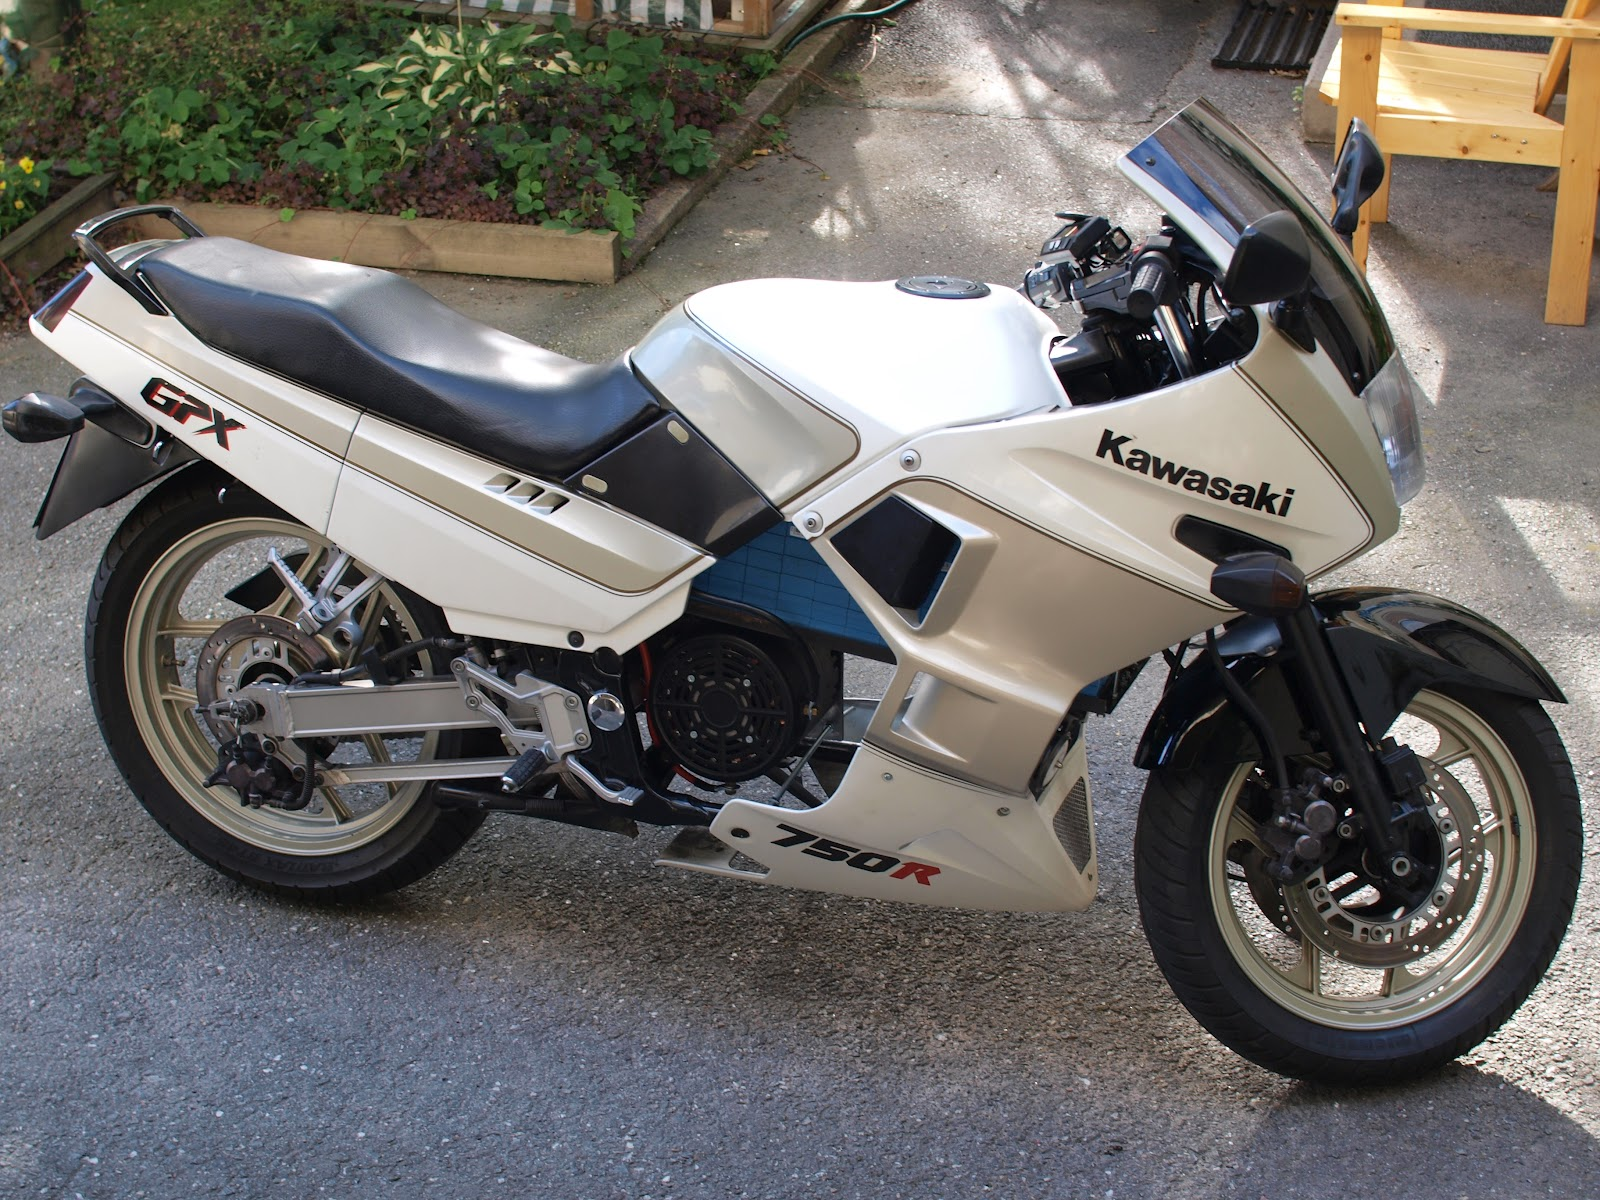 home-made-electric-kawasaki-gpx-750r-motorcycle-photo-galleryvideo_1.jpg